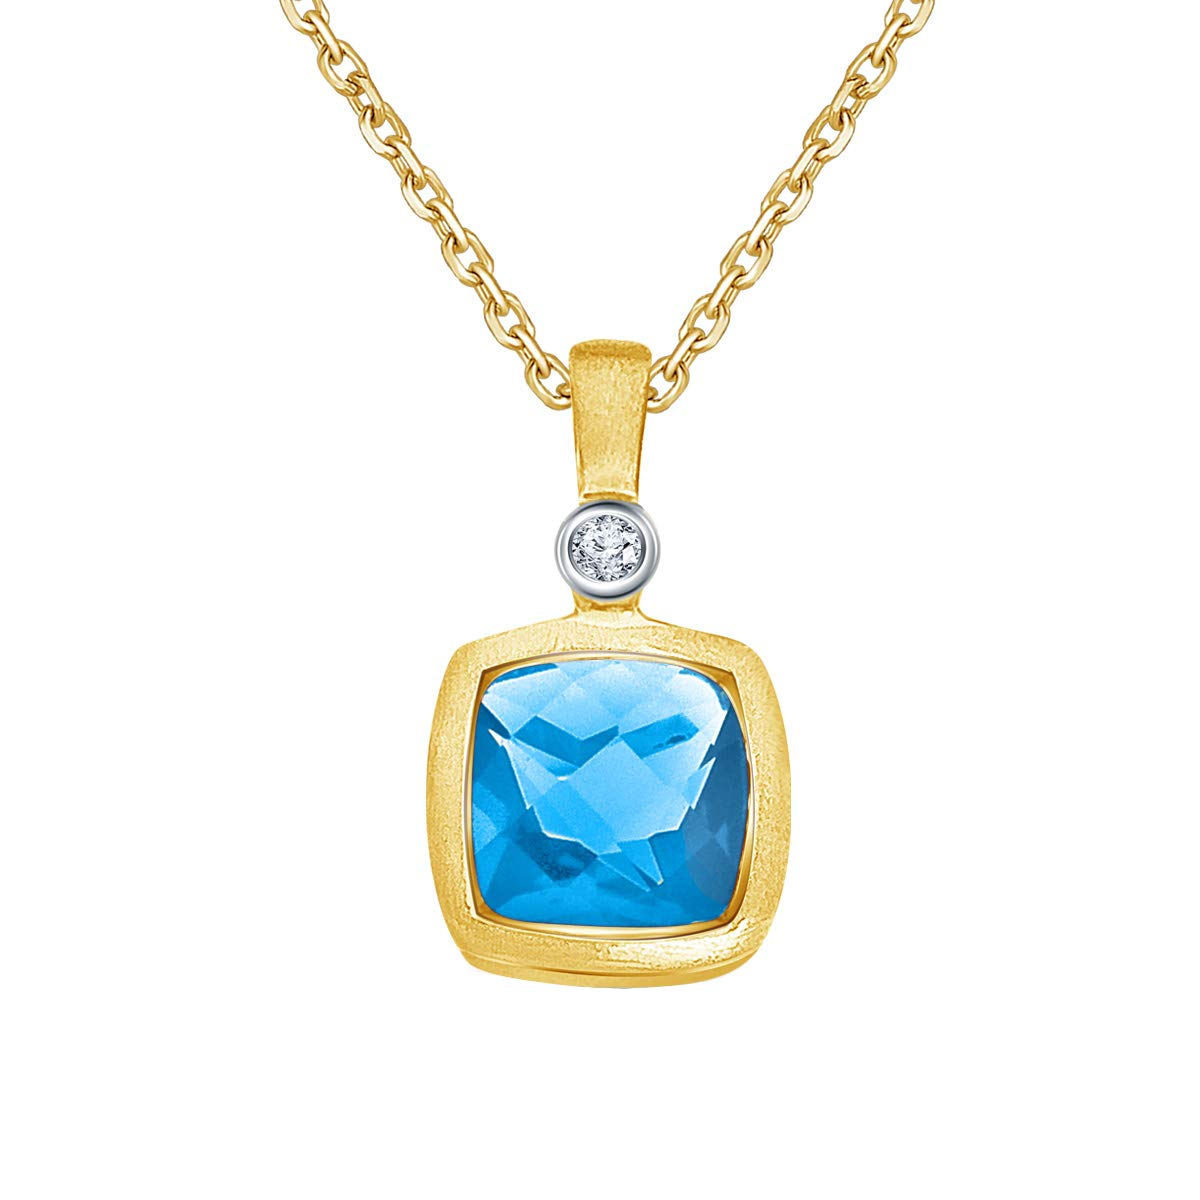 DTJEWELS 0.01 CT Cushion Blue Topaz /& Simulated Diamond Pendant with 18 Chain 14K Yellow Gold Plated